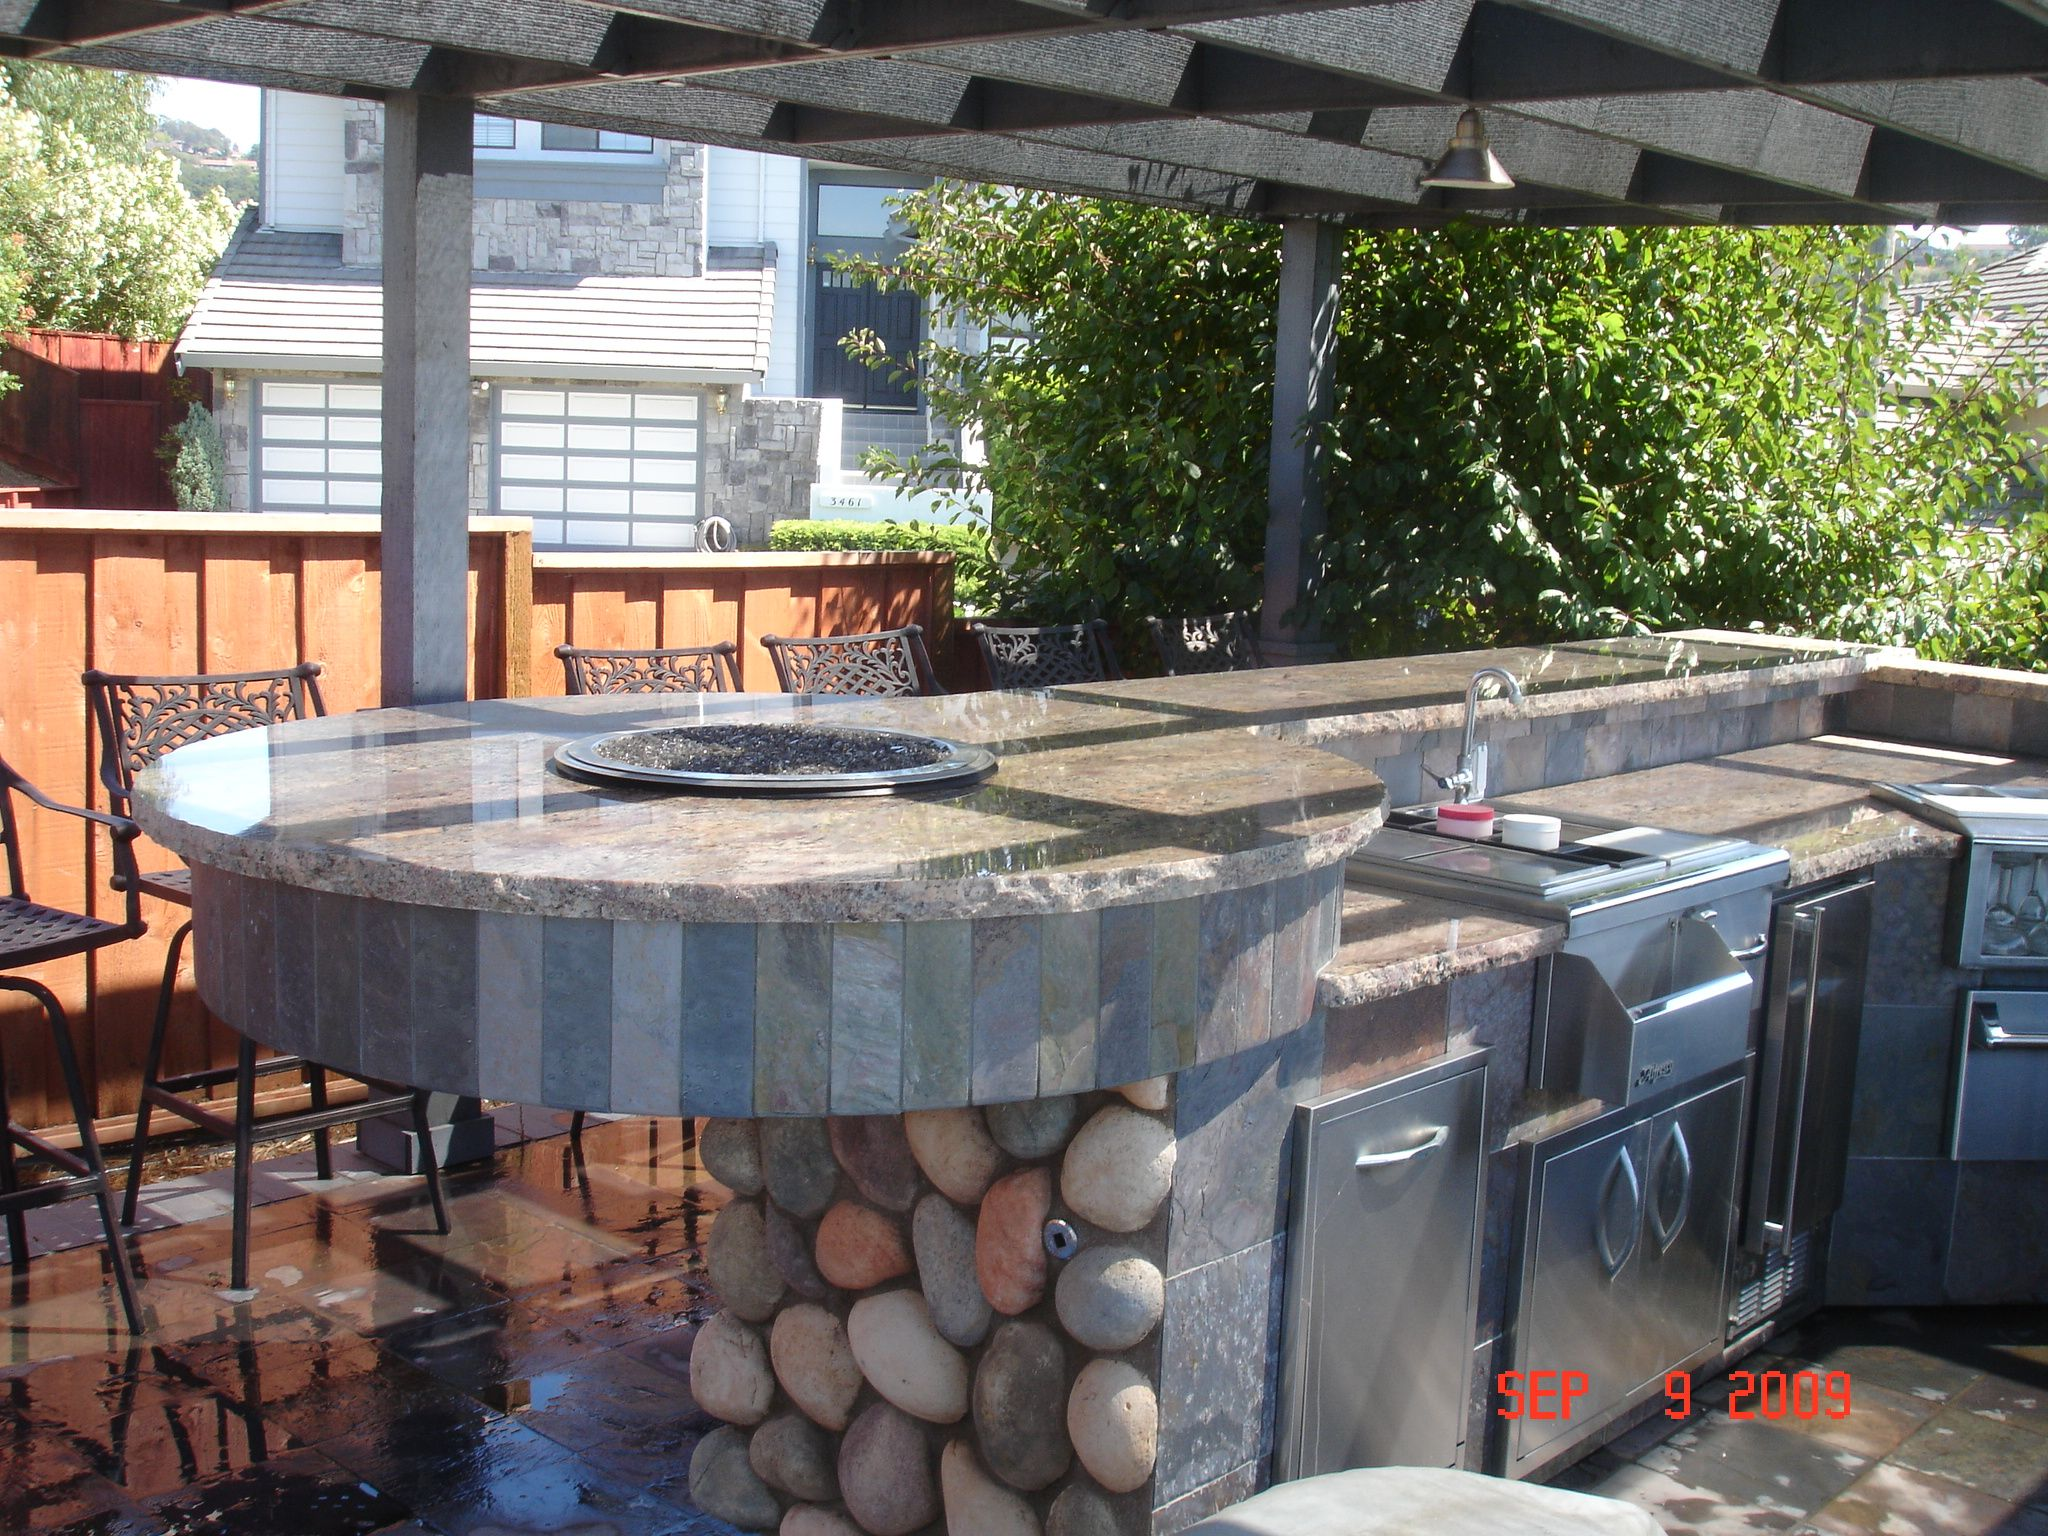 Outdoor Kitchens And Bars Kitchen Island Complete With Fire Table Bar Counter Caddy